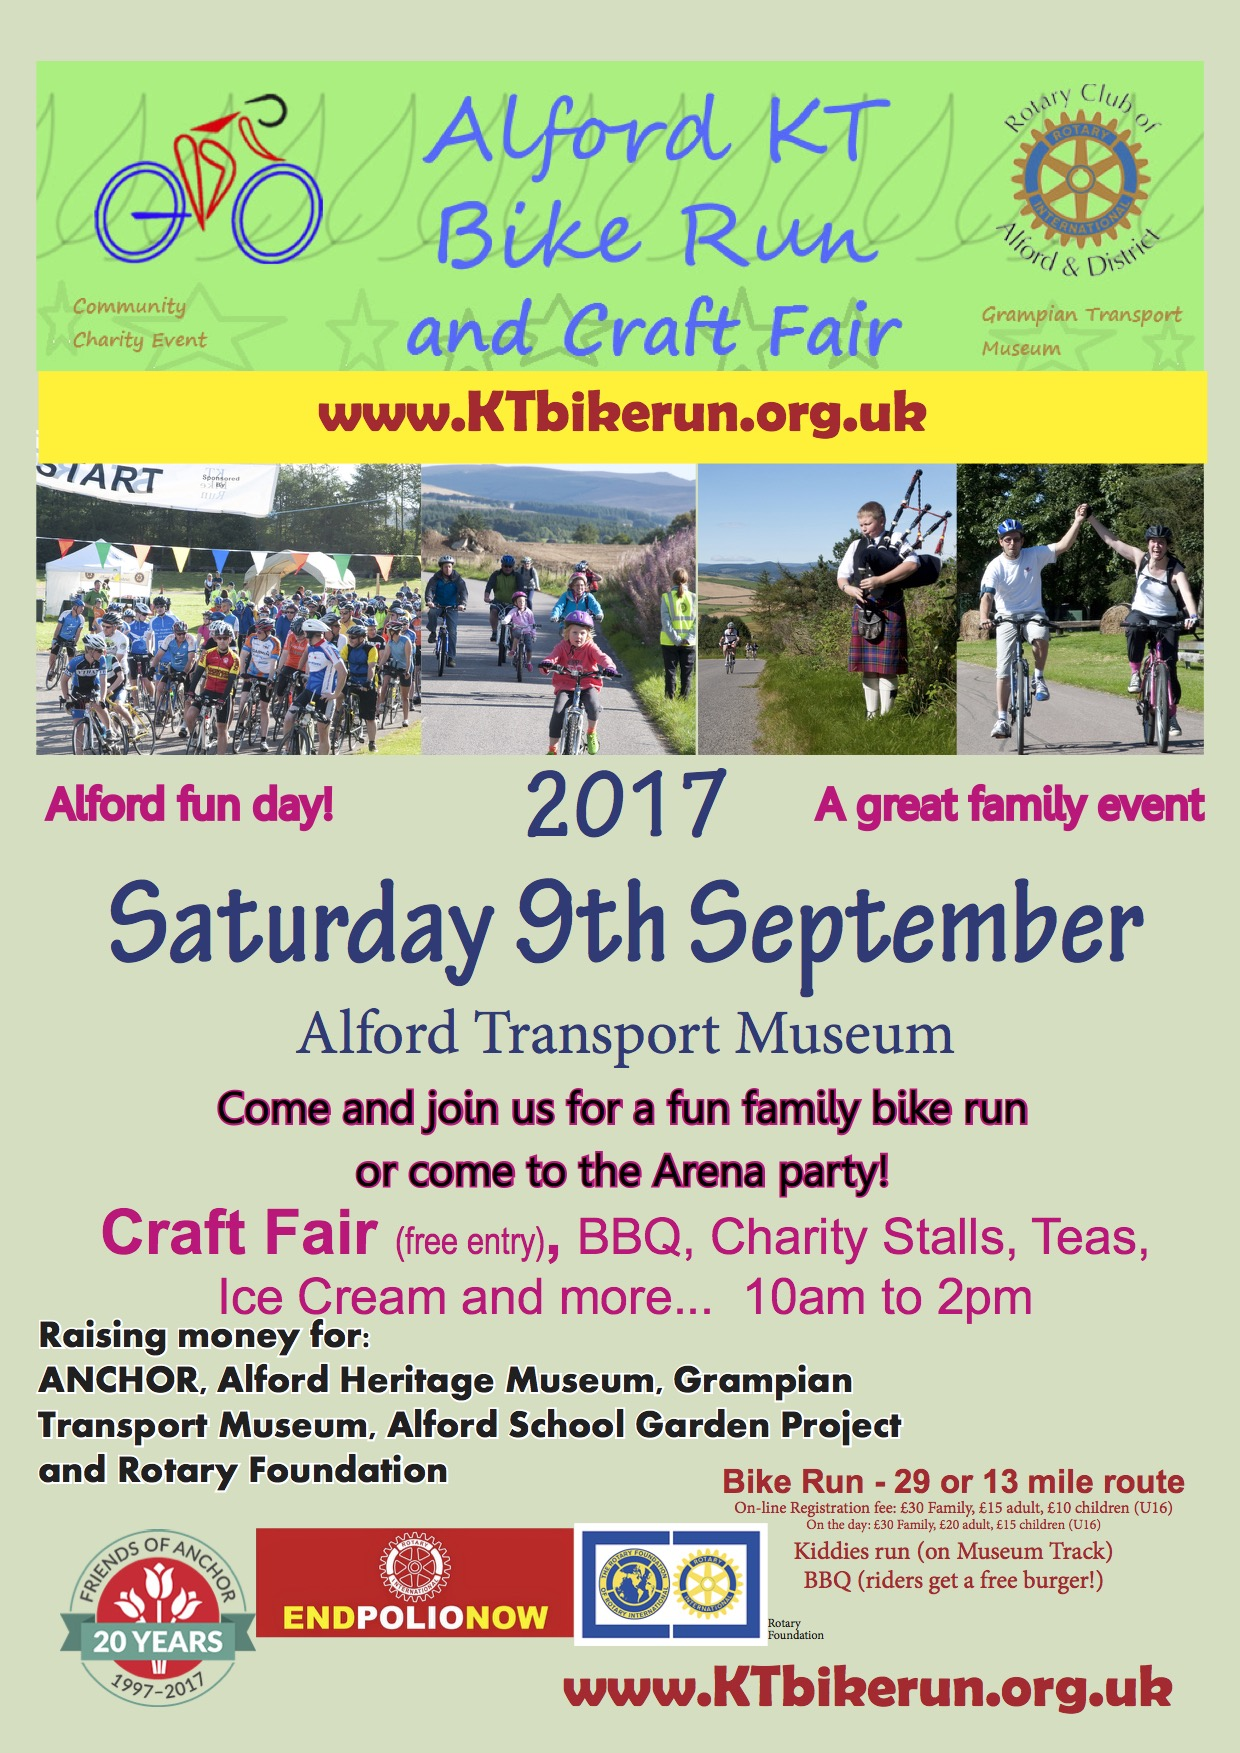 Alford KT Bike Run and Craft Fair Poster